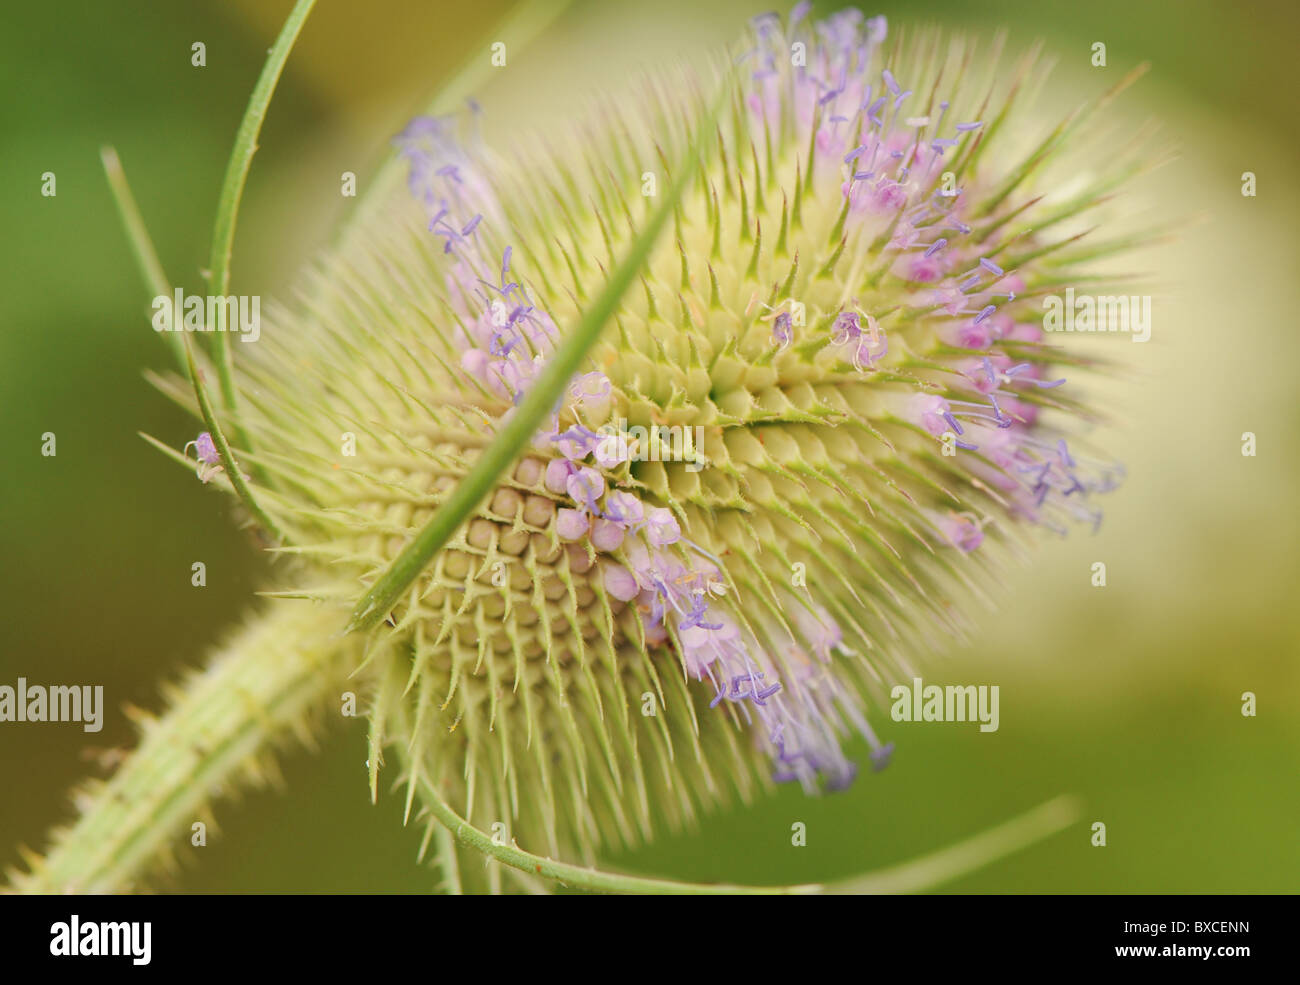 A single Teasel Flower head - Dipsacus fullonum - Stock Image